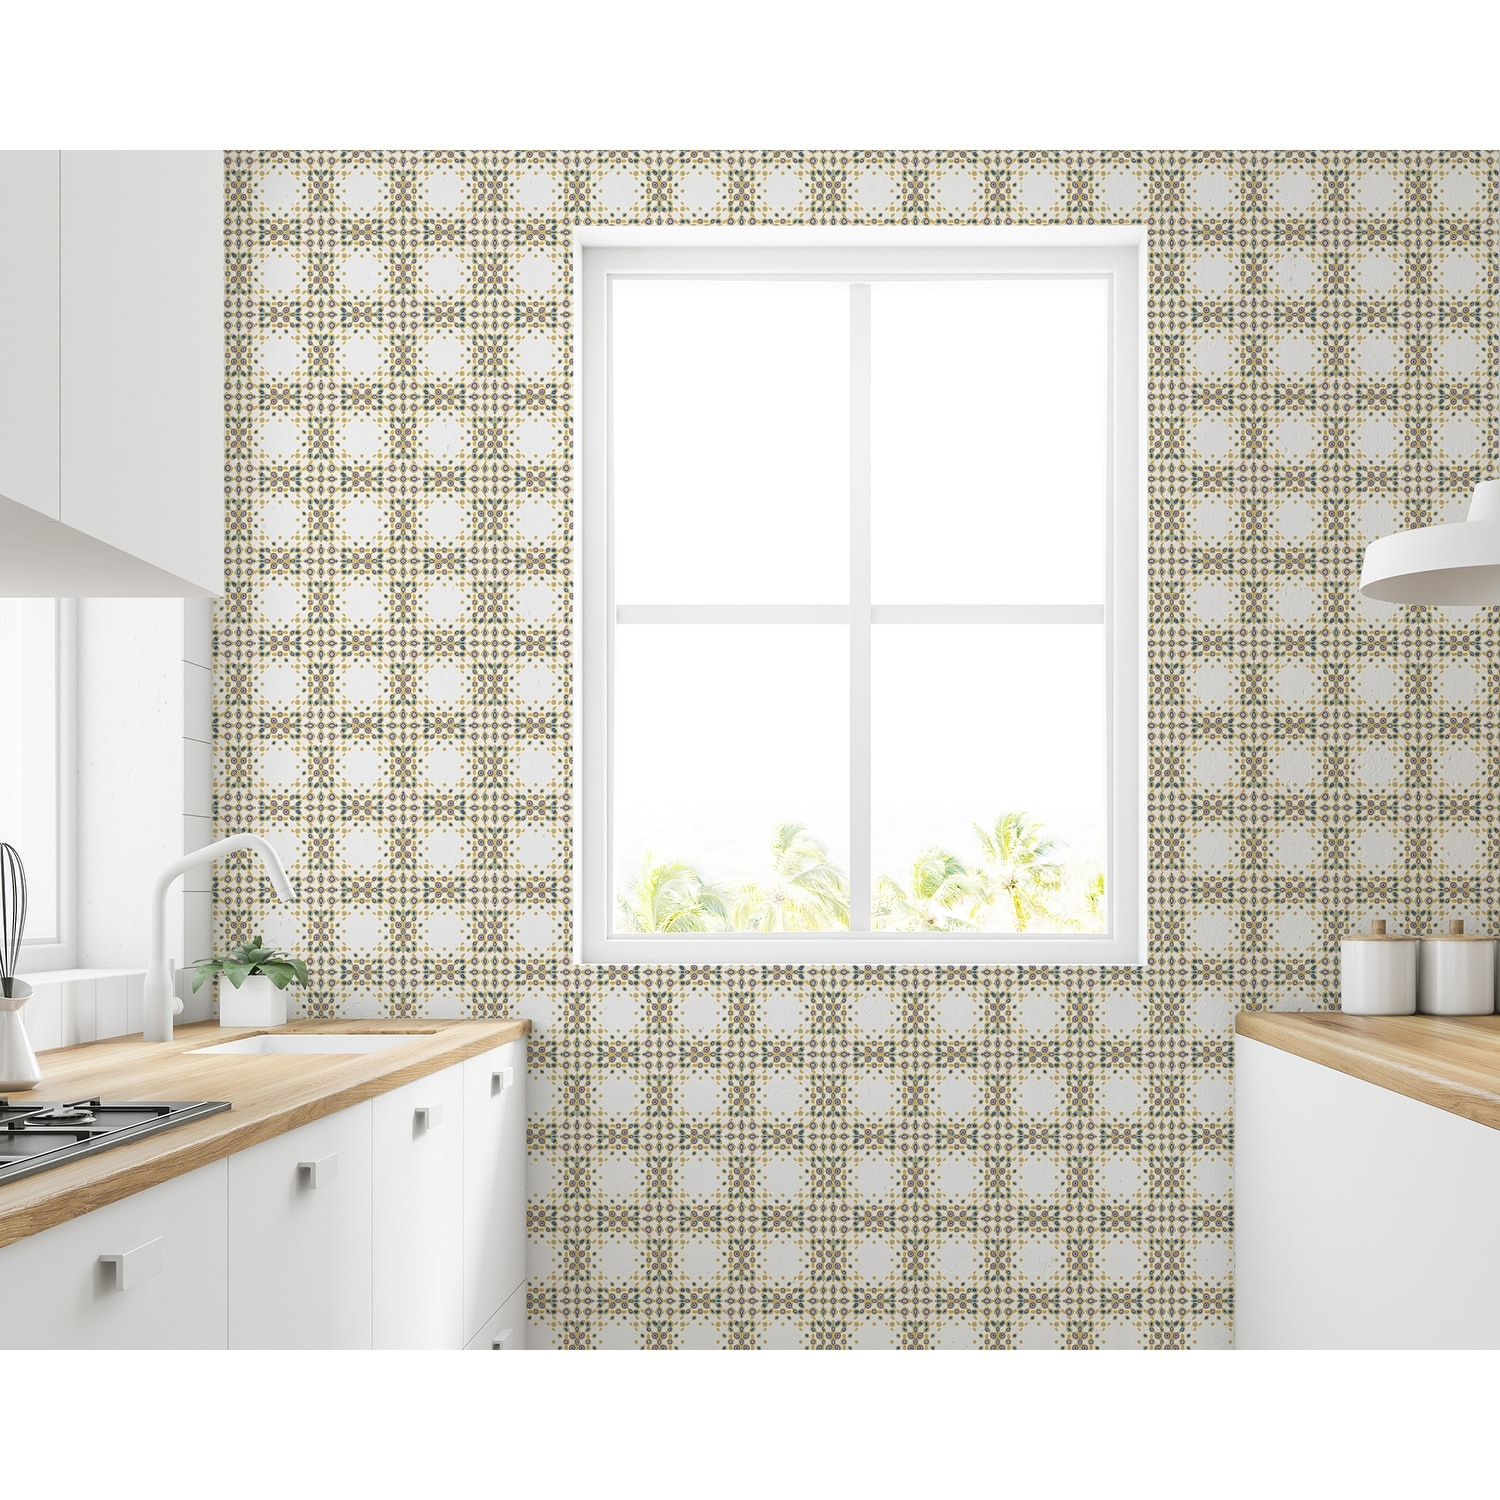 Shop Sbc Decor Modern Mosaic Removable Peel Stick Vinyl Wallpaper Panel Overstock 32029318